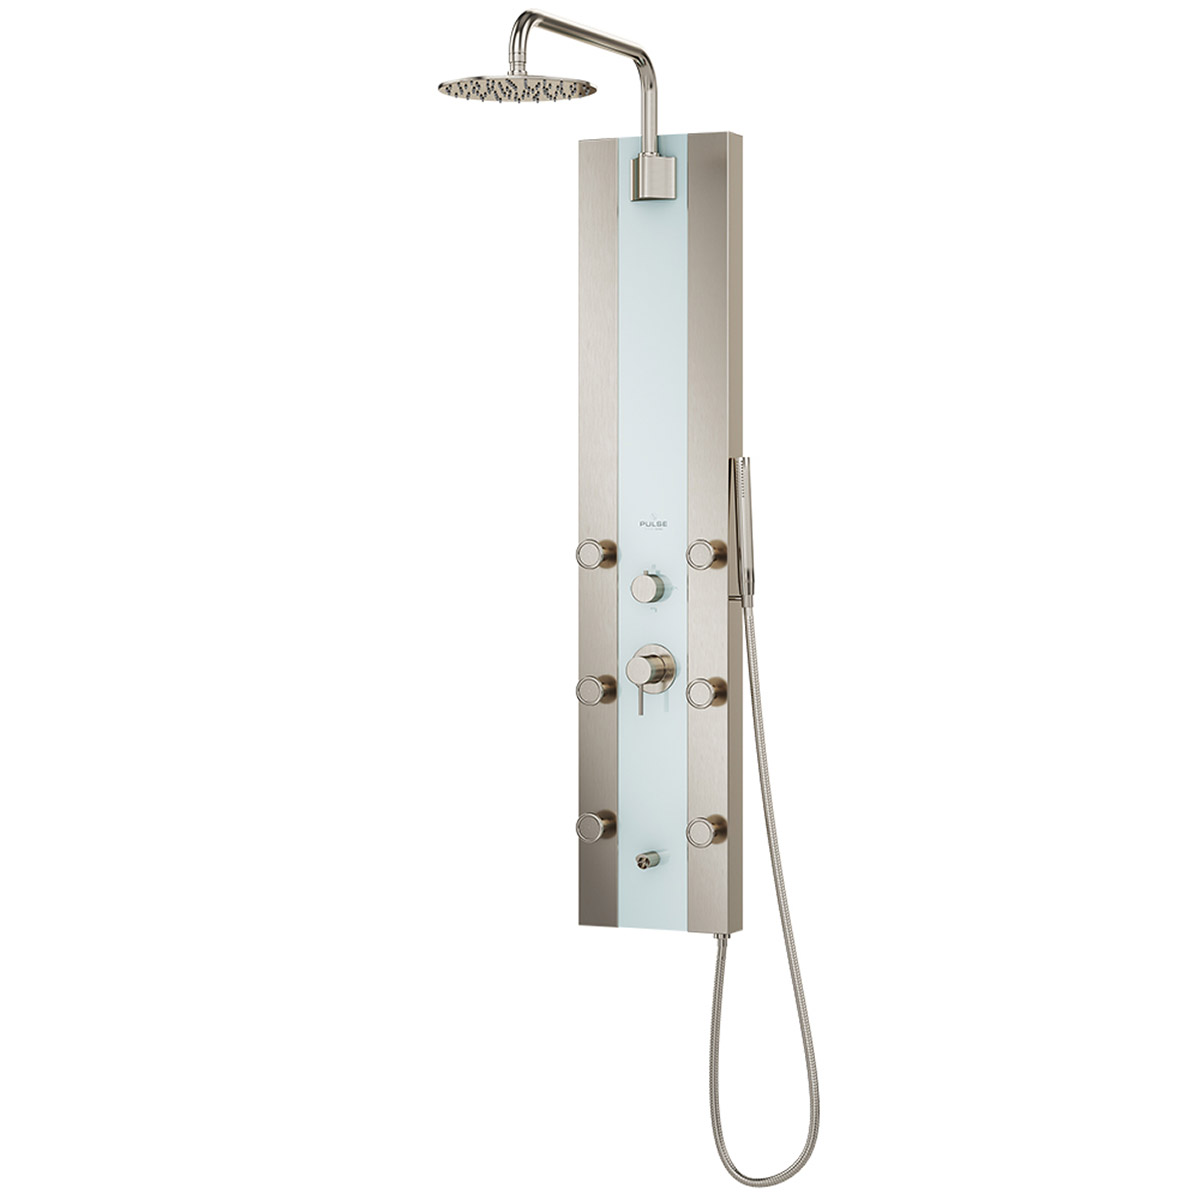 PULSE ShowerSpas White Glass Shower Panel - Tropicana ShowerSpa